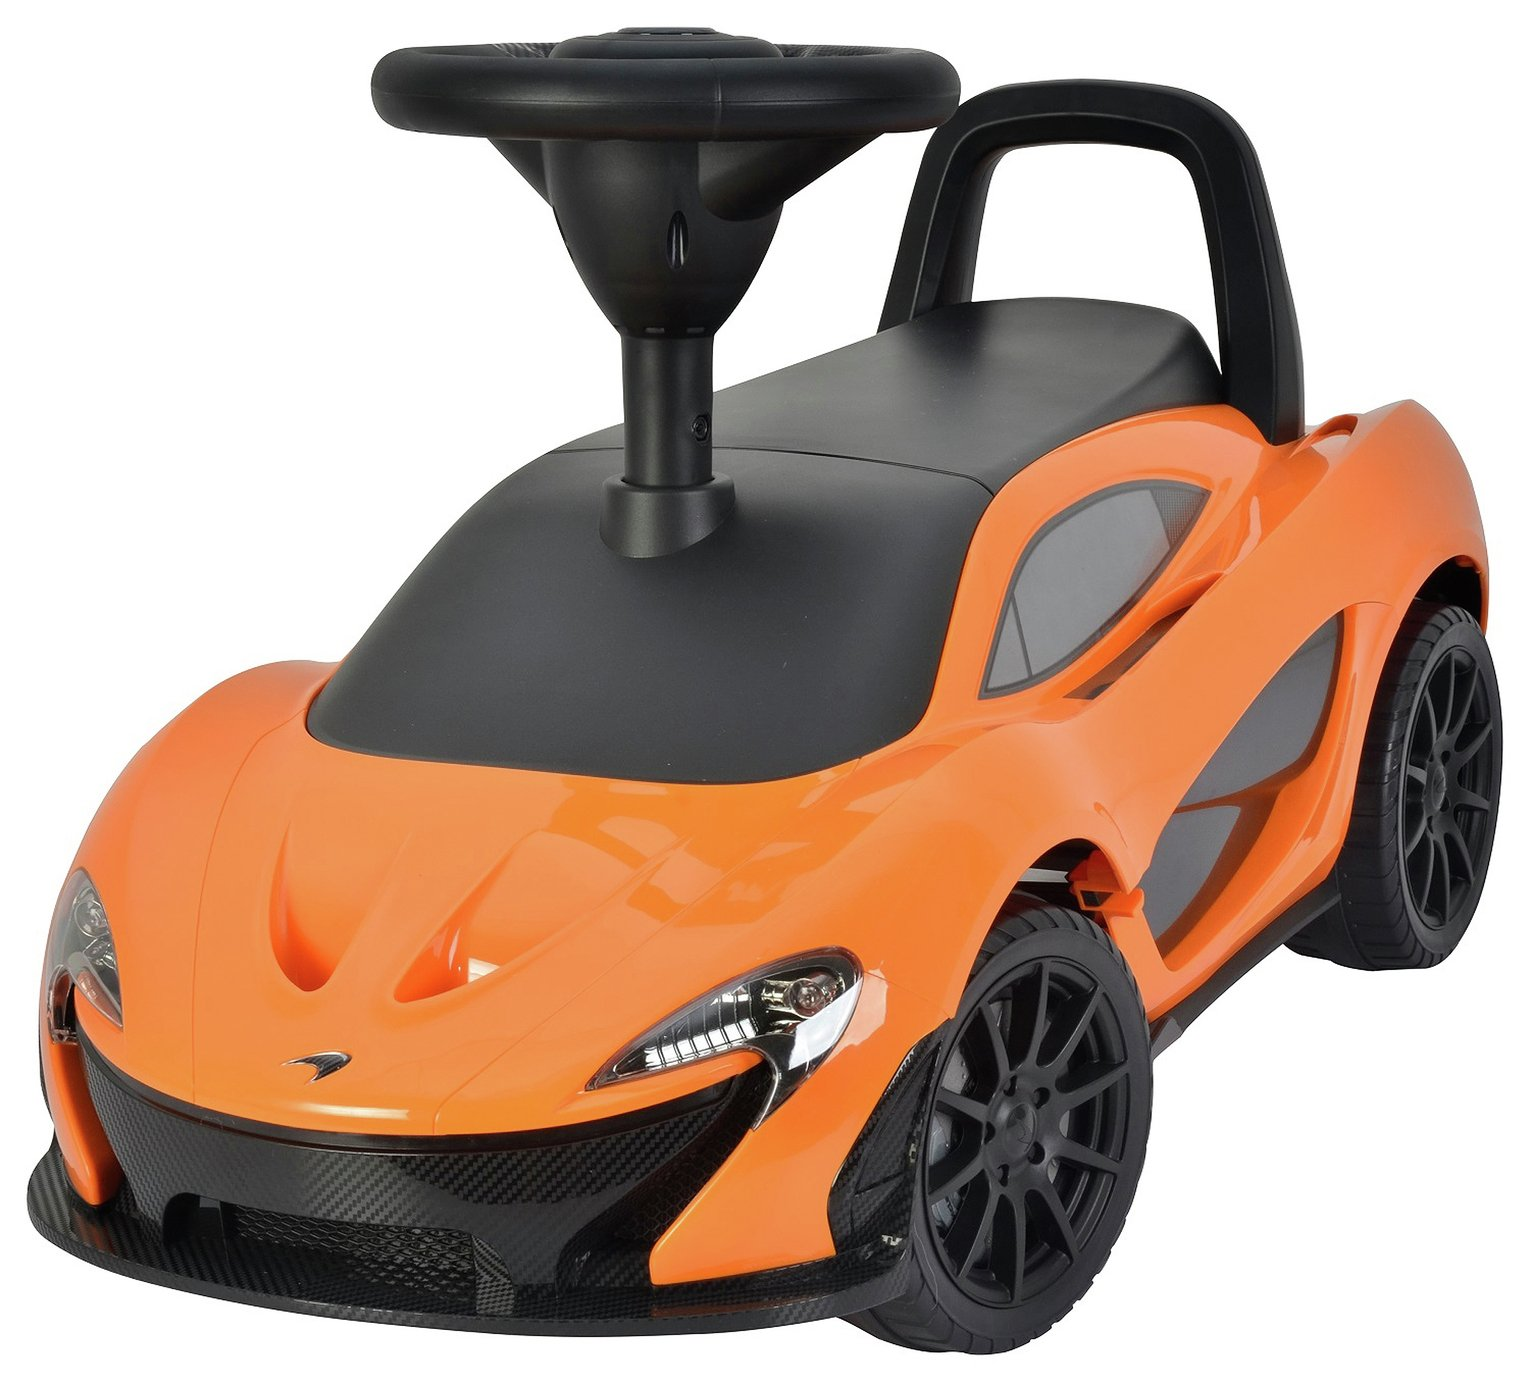 ToyStar McLaren MP1 Car Ride On